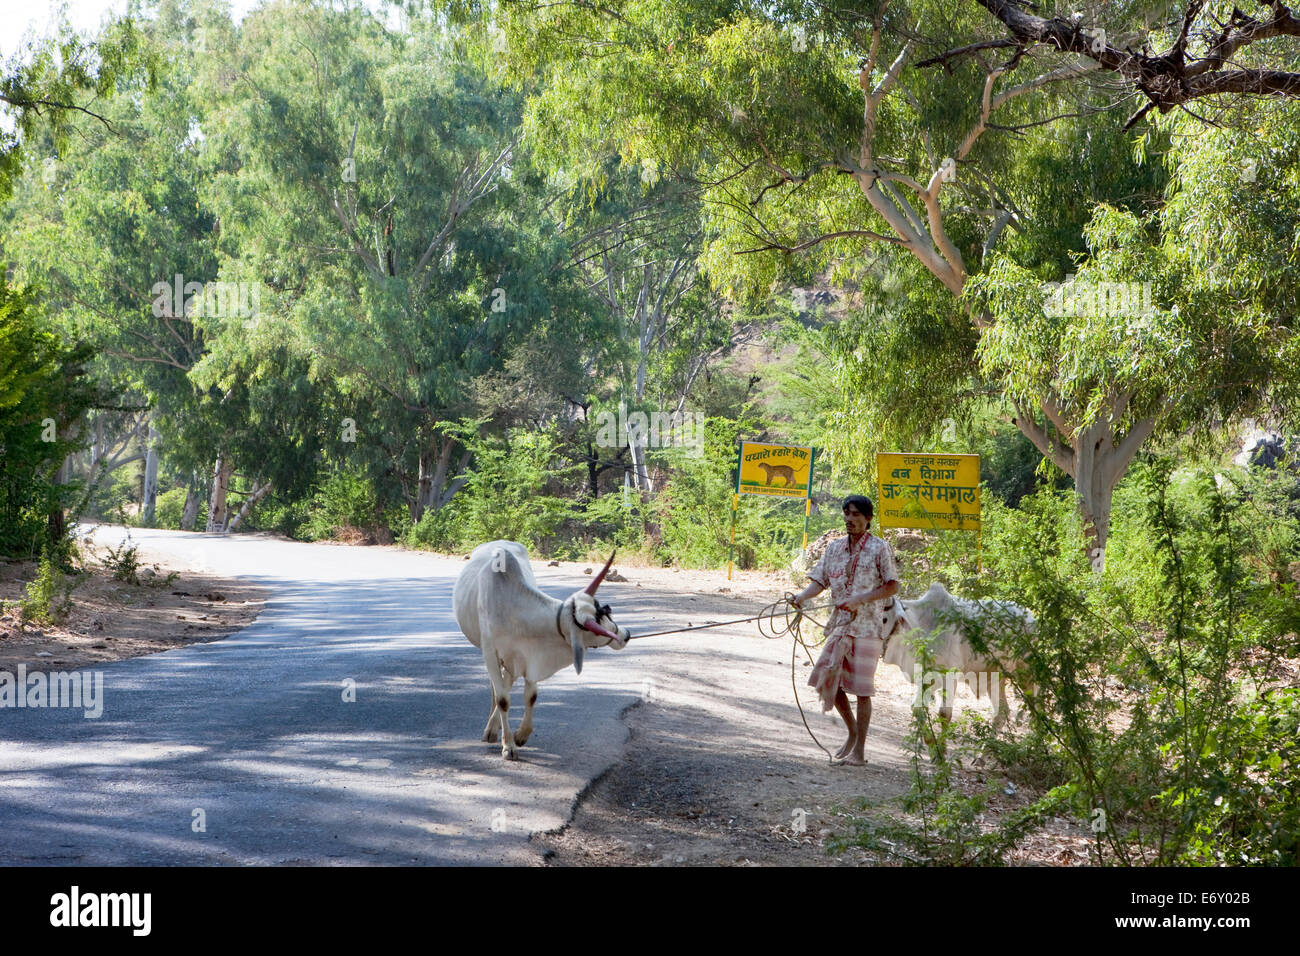 Hindu with his cebu cattle on the way to Ranakpur Temple, Ranakpur, Rajasthan, India - Stock Image